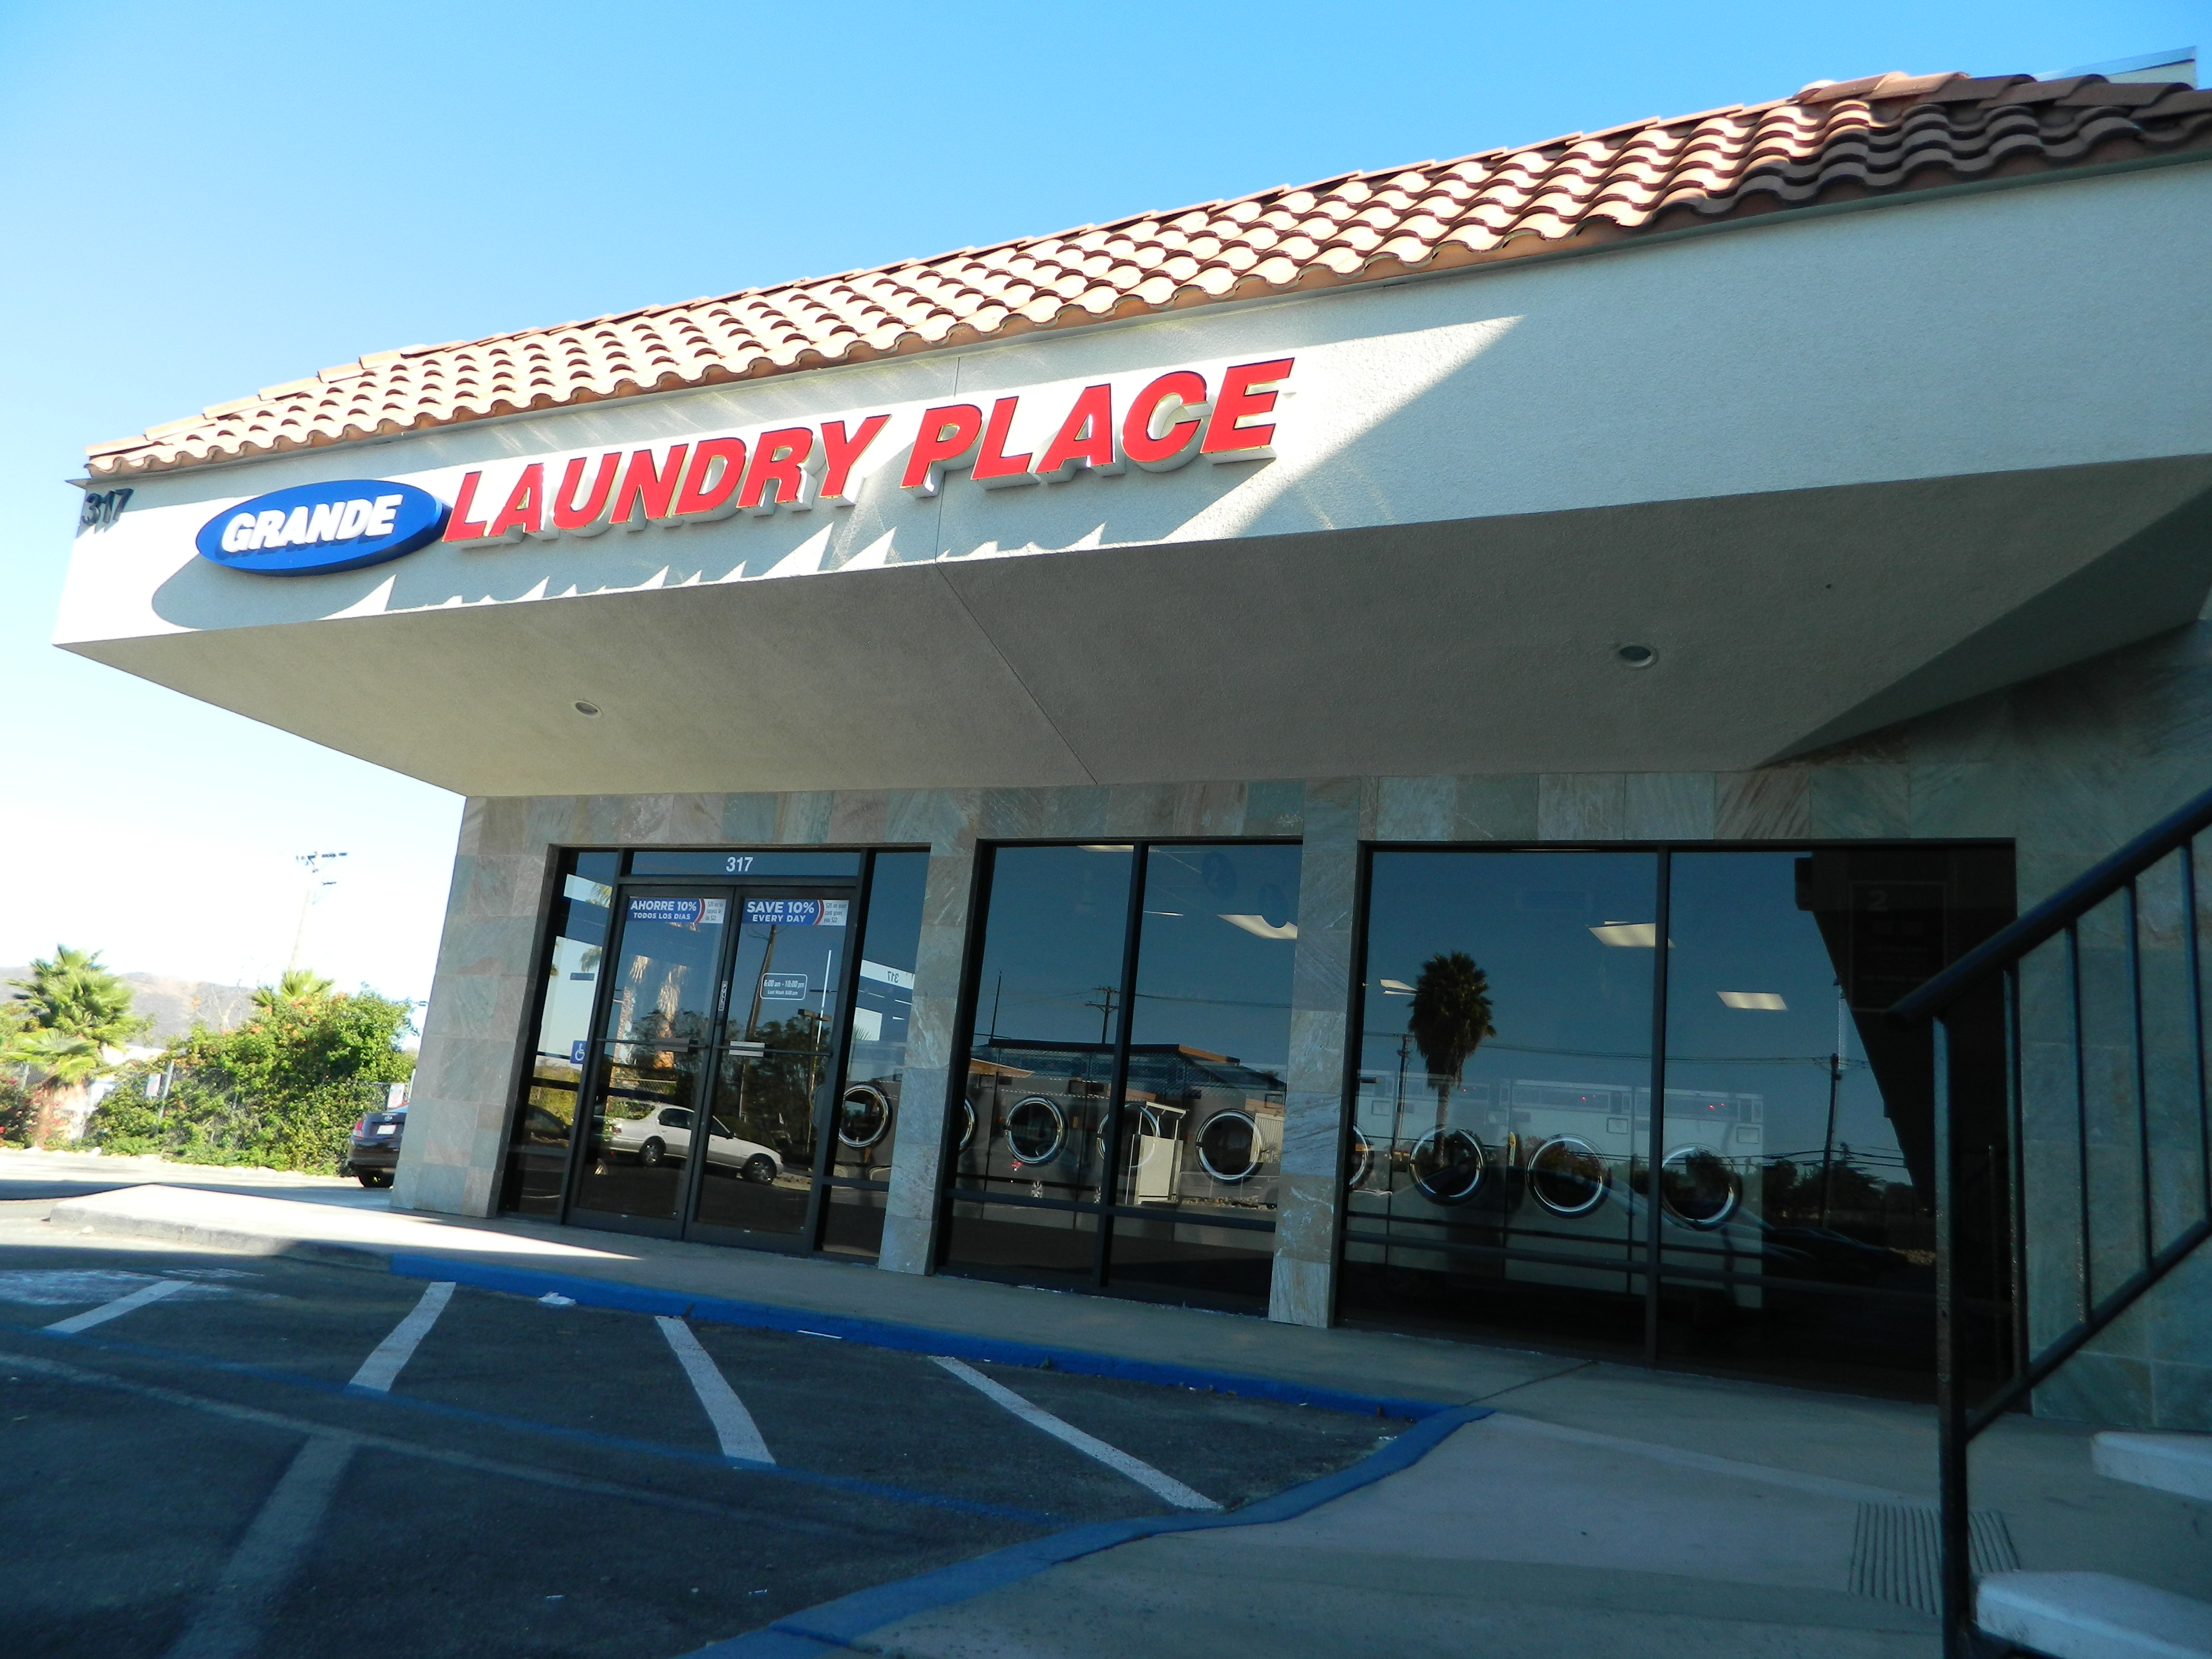 Grande Laundry Place Opens New State Of The Art Laundromat